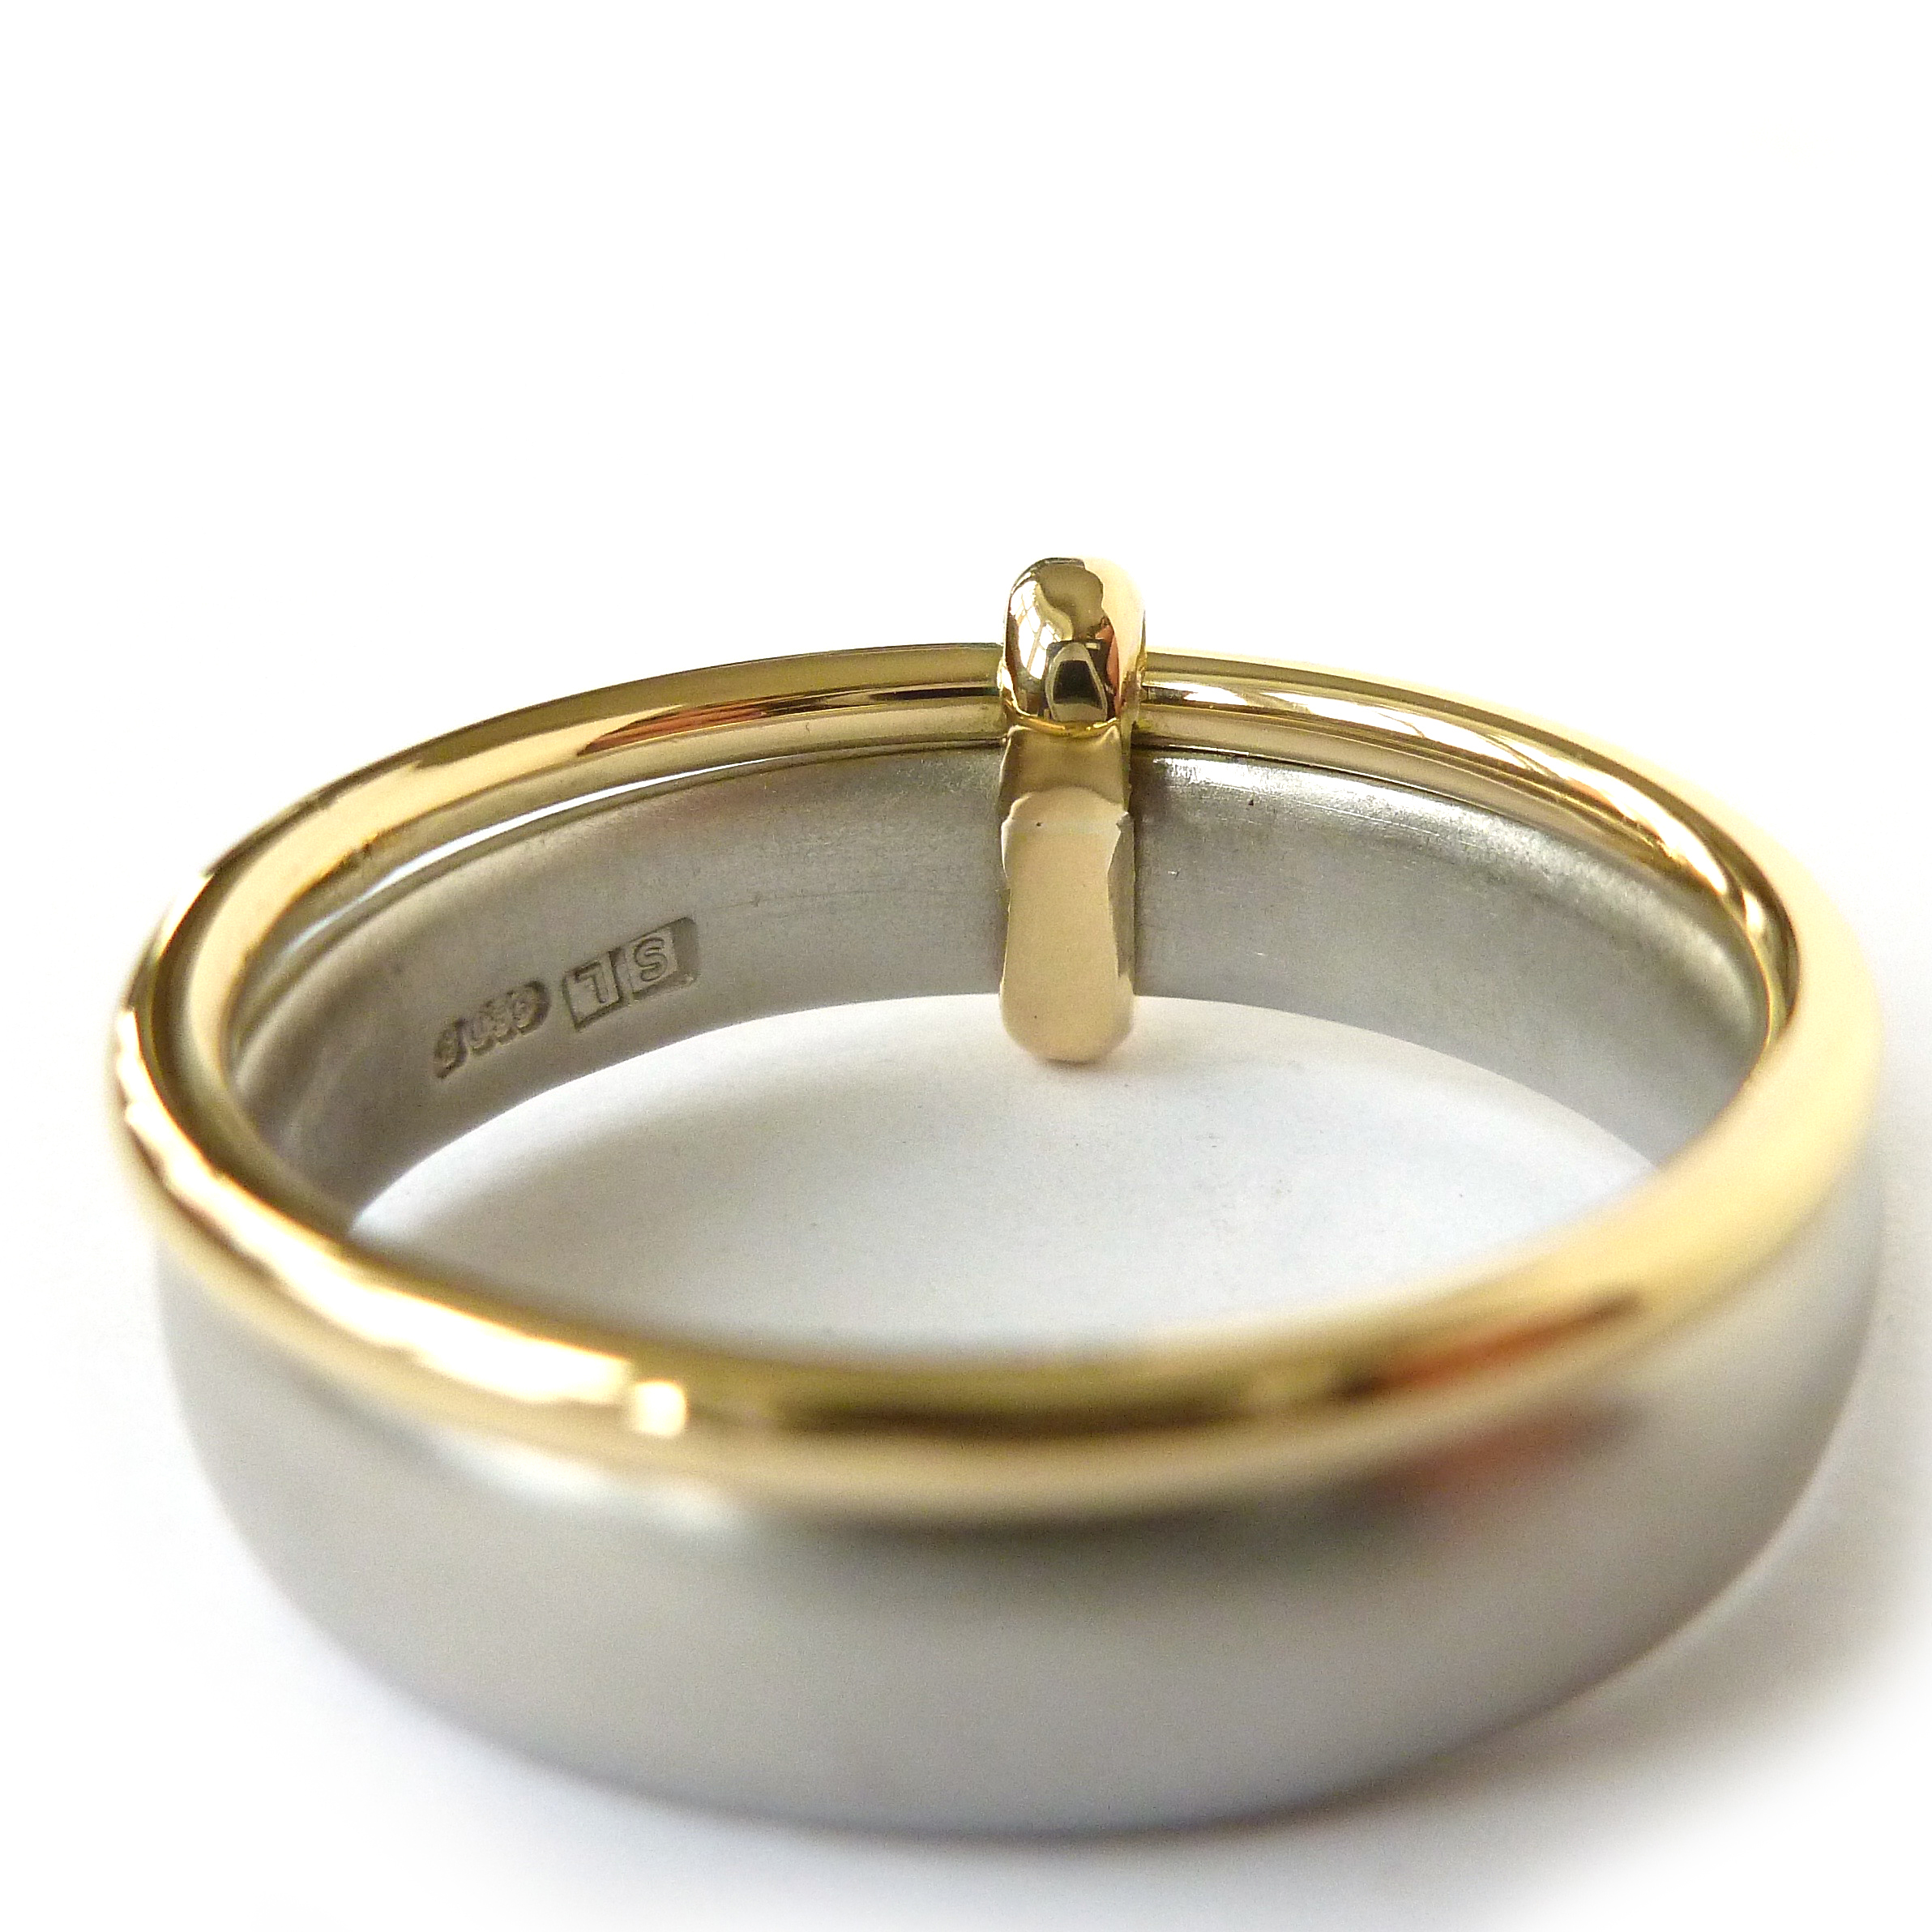 band czki obra two tone ring lovely gold of brushed wedding obr elegant bliss bands mens size rings